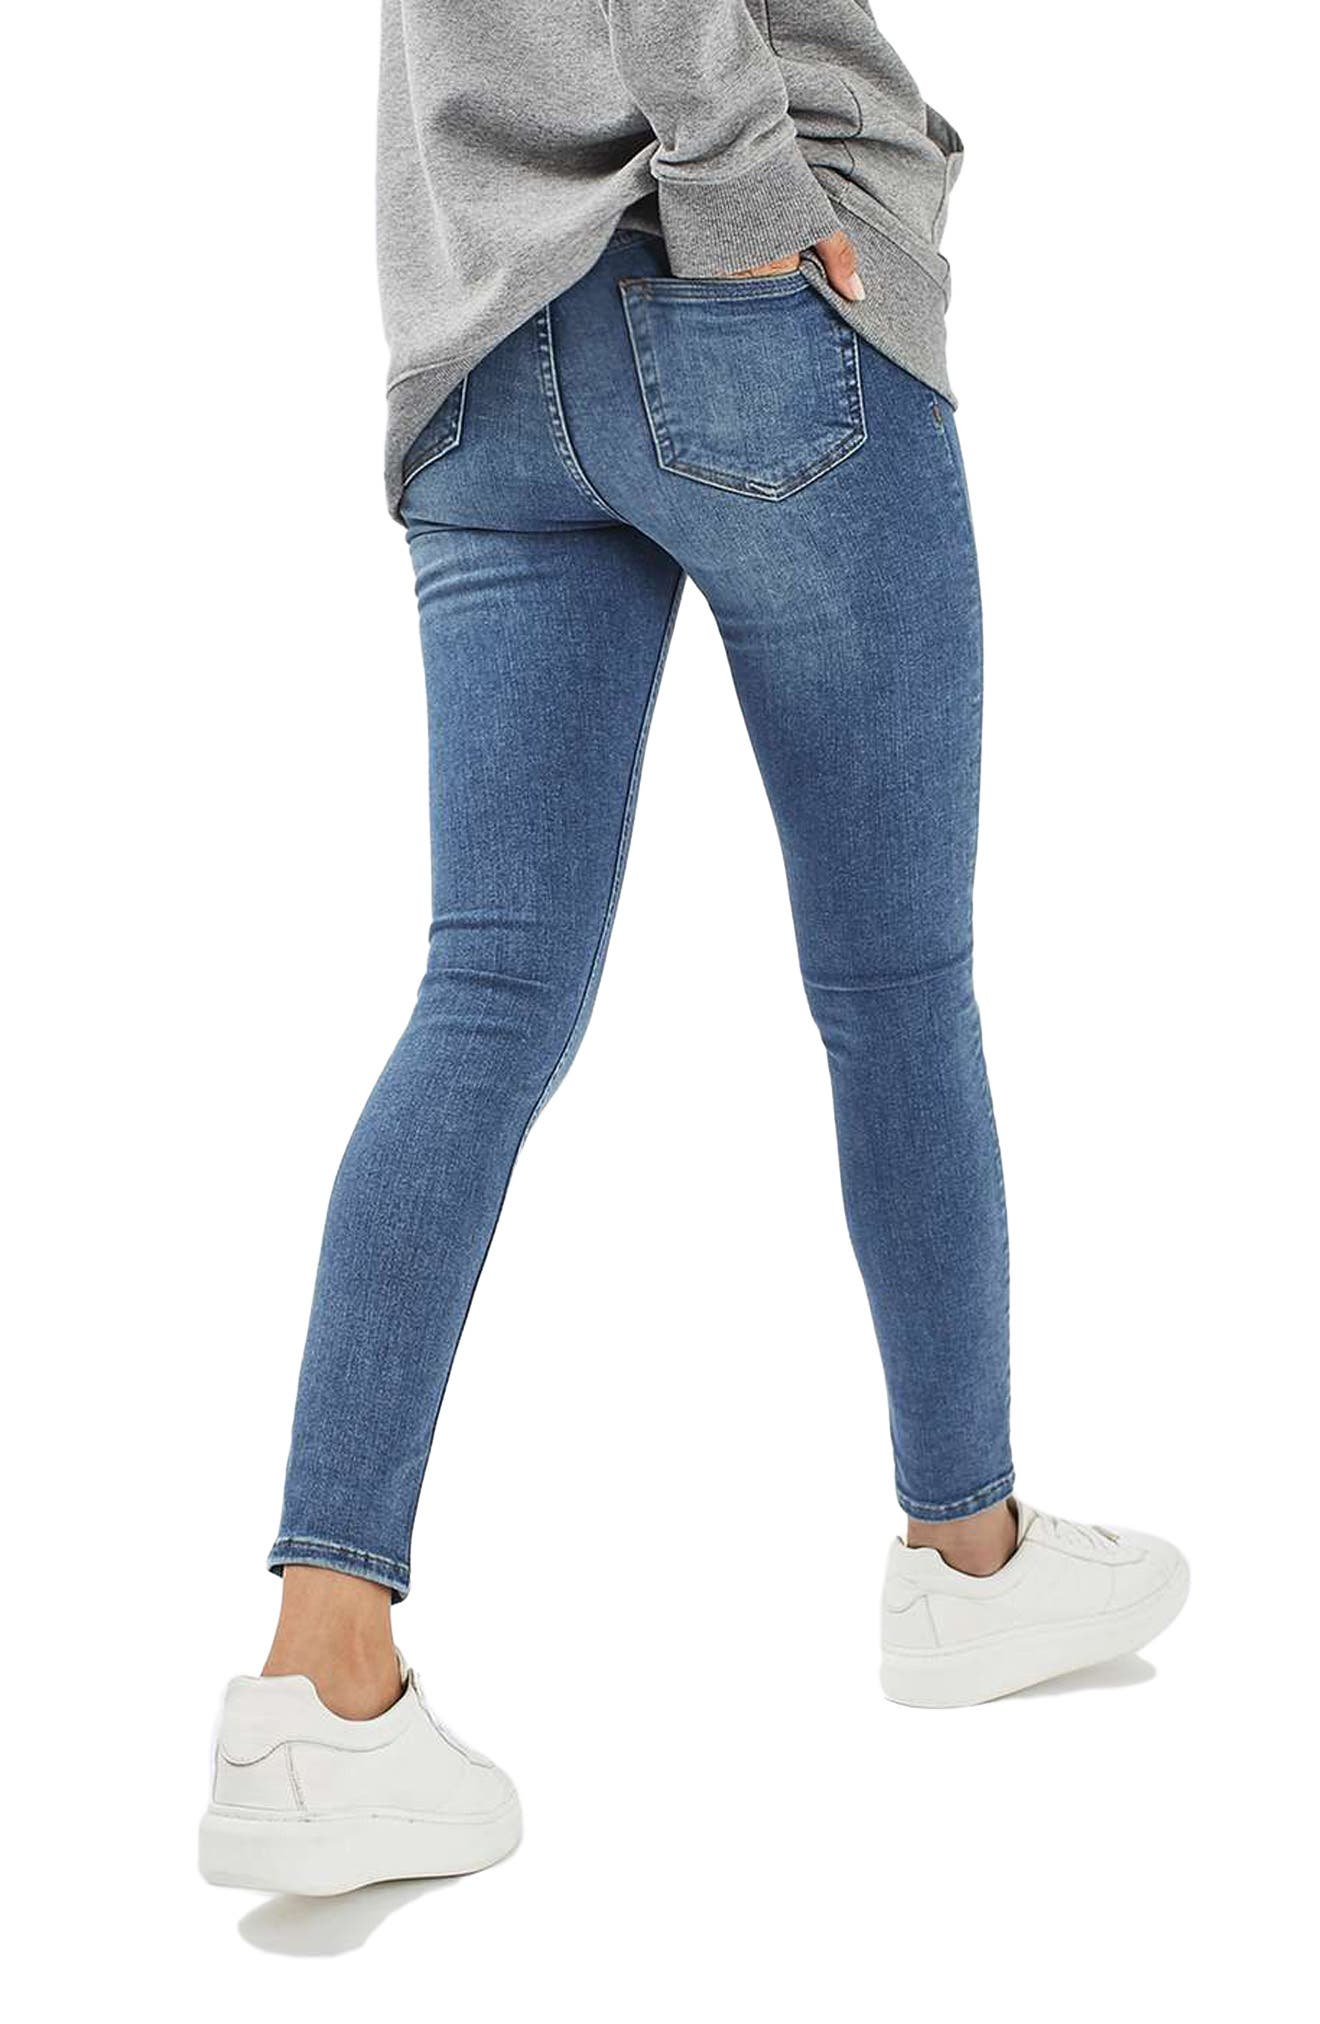 Jamie High Waist Crop Skinny Jeans,                             Alternate thumbnail 3, color,                             400